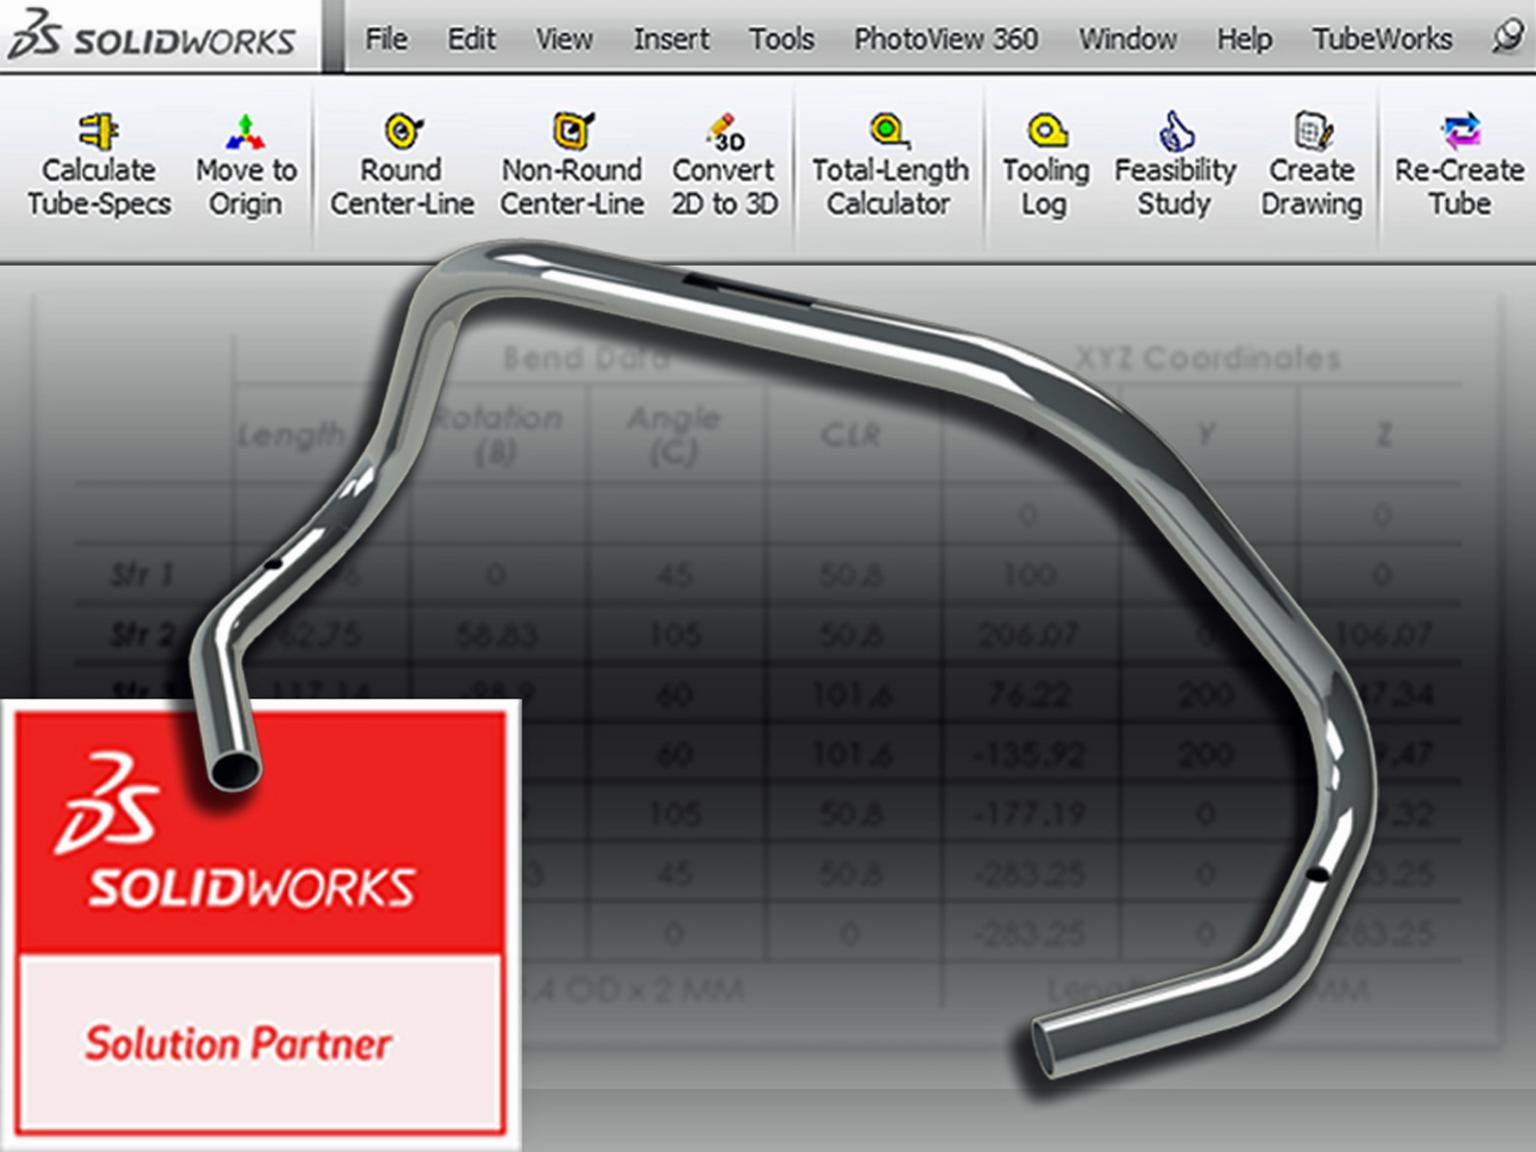 Metal fabricators who use SolidWorks CAD software can now accelerate the pre-production phase of tube bending significantly by using a new add-in available from Unison